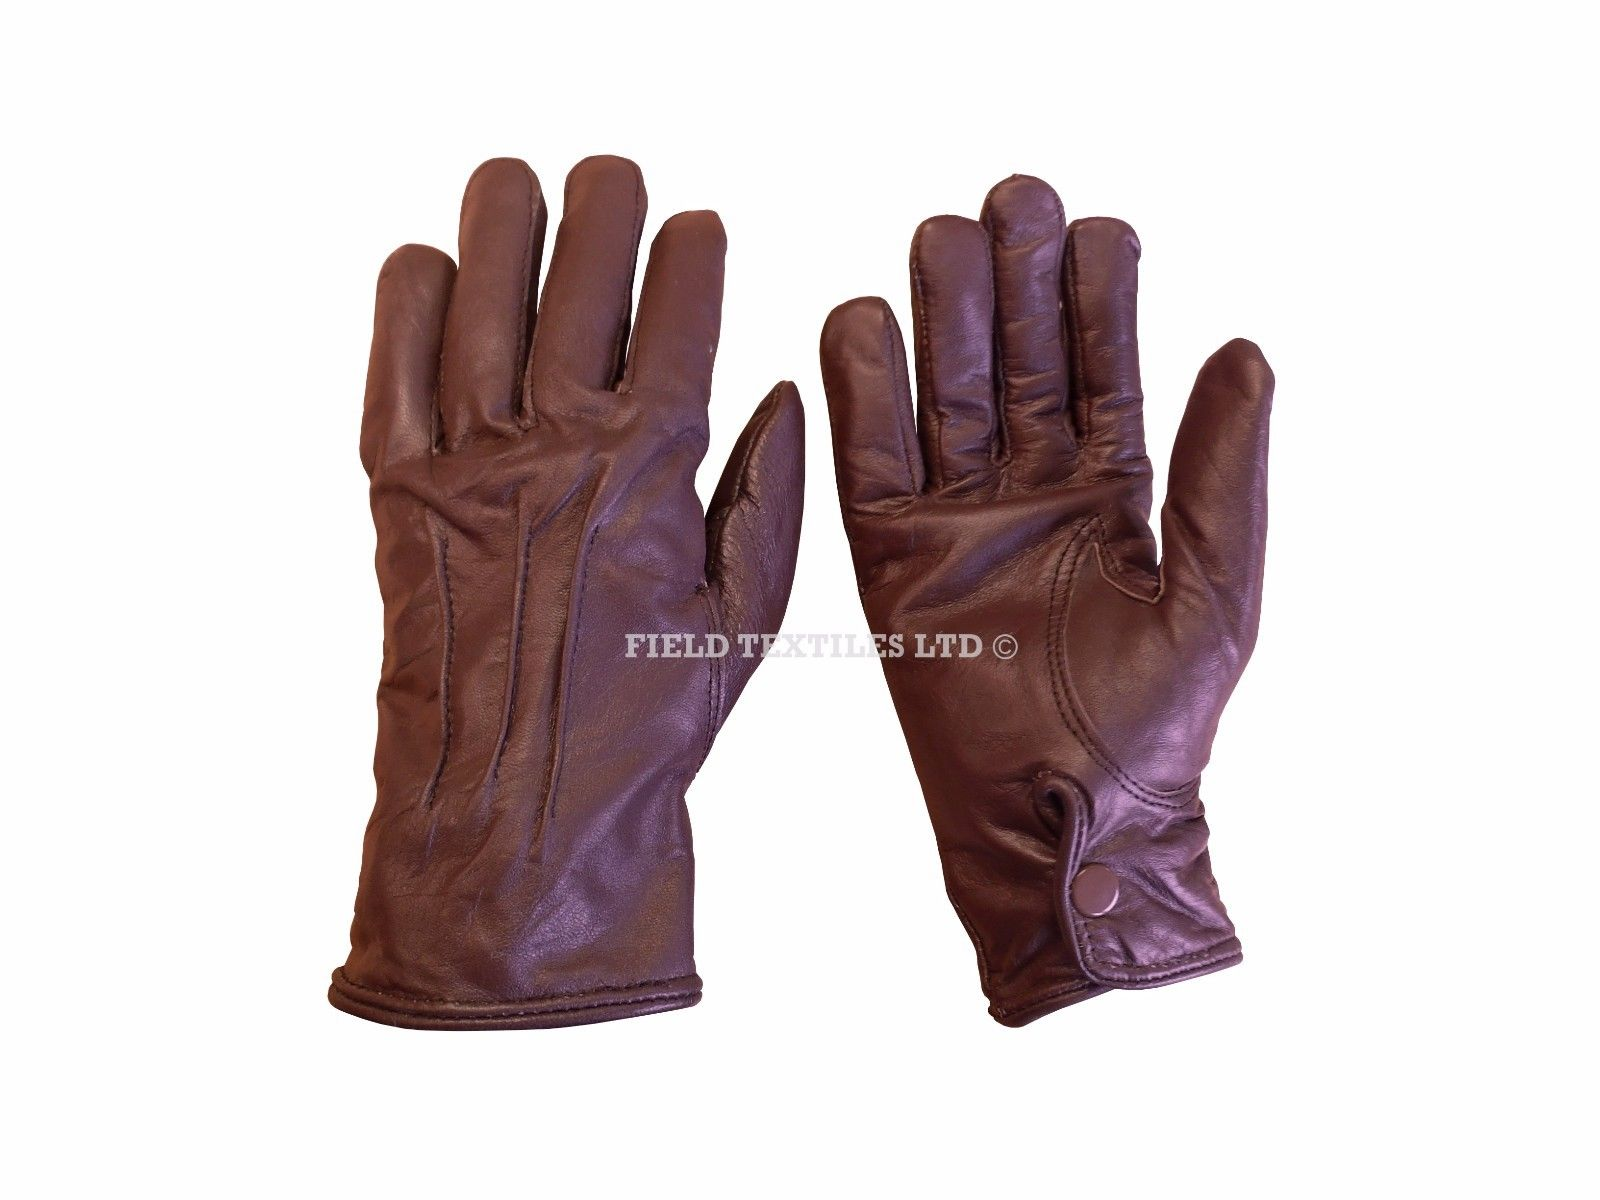 Lot 19 - PACK OF 5 - BROWN GLOVES - NEW - MIX OF SIZES